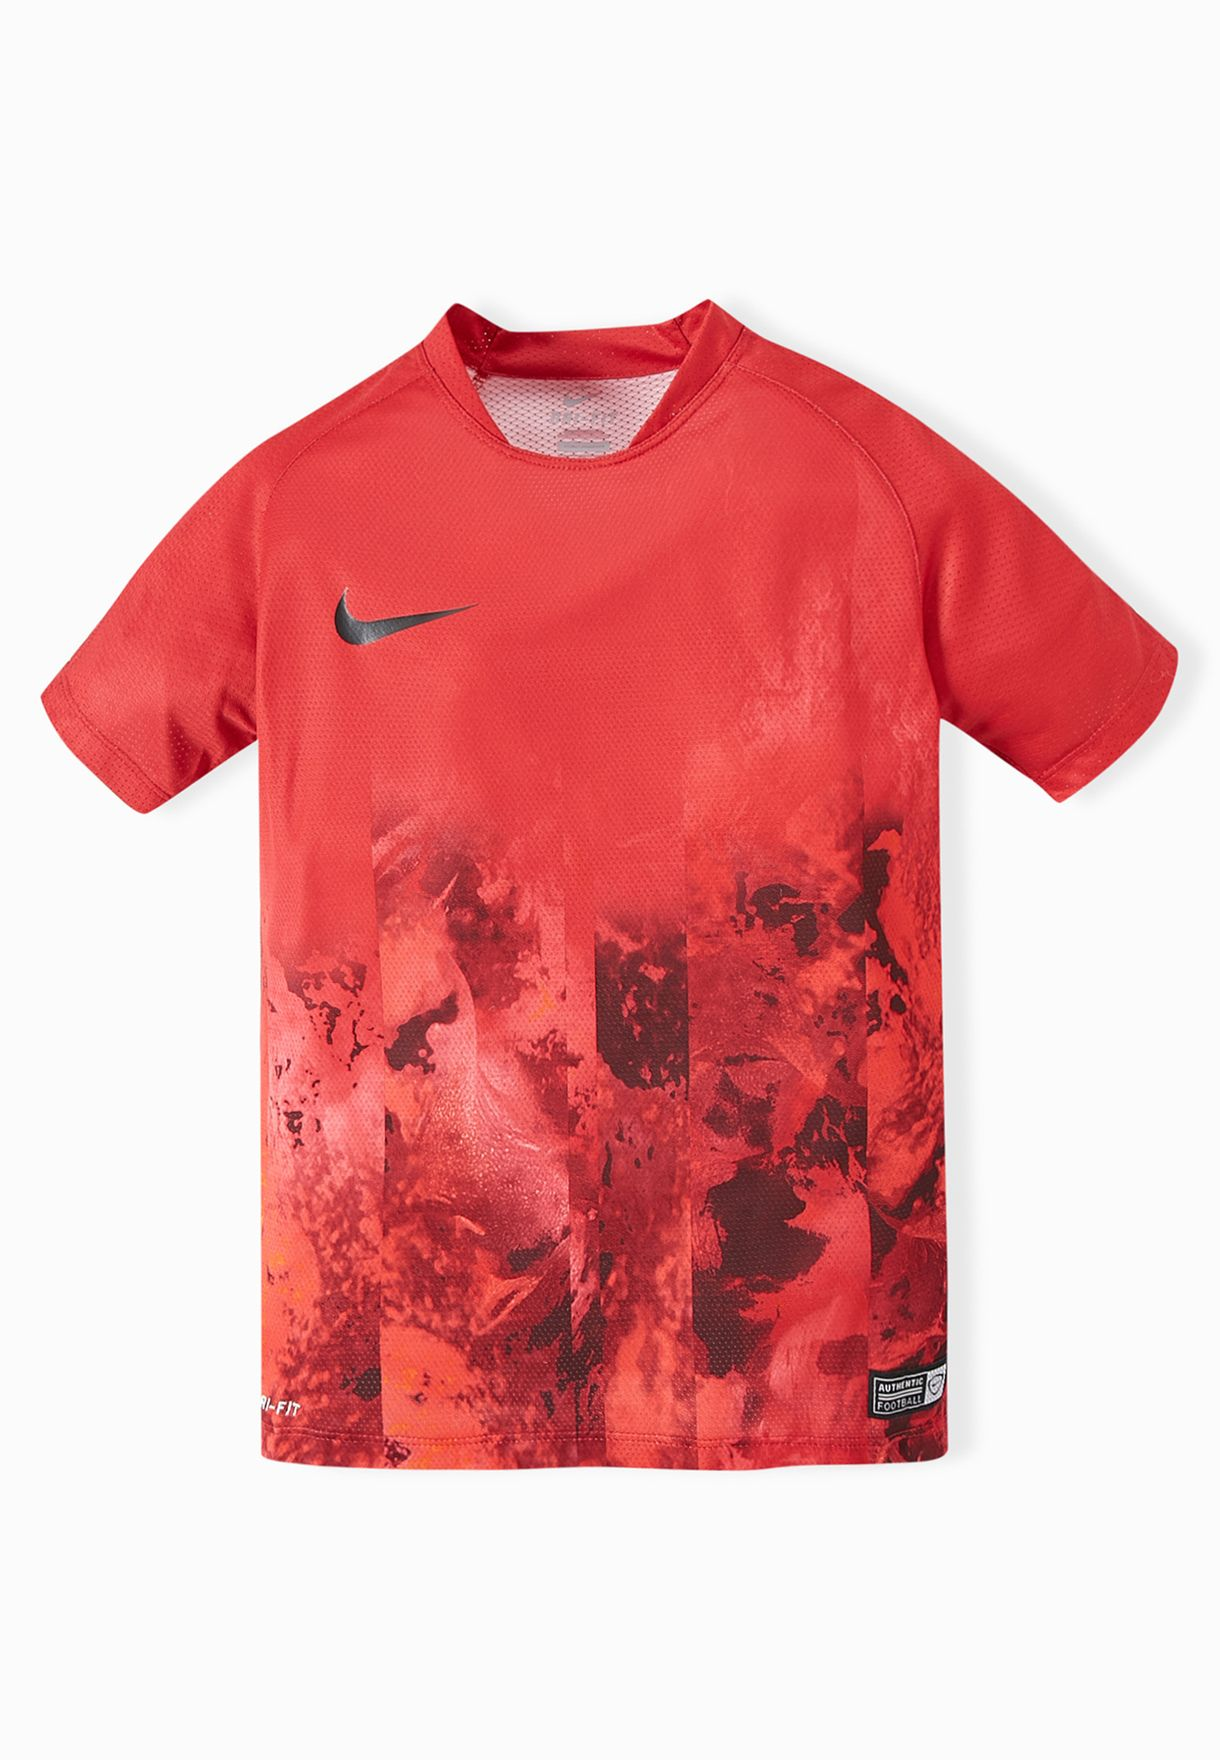 cc8f3593 Shop Nike red Youth Flash Cr7 T-Shirt 714976-657 for Kids in Bahrain ...